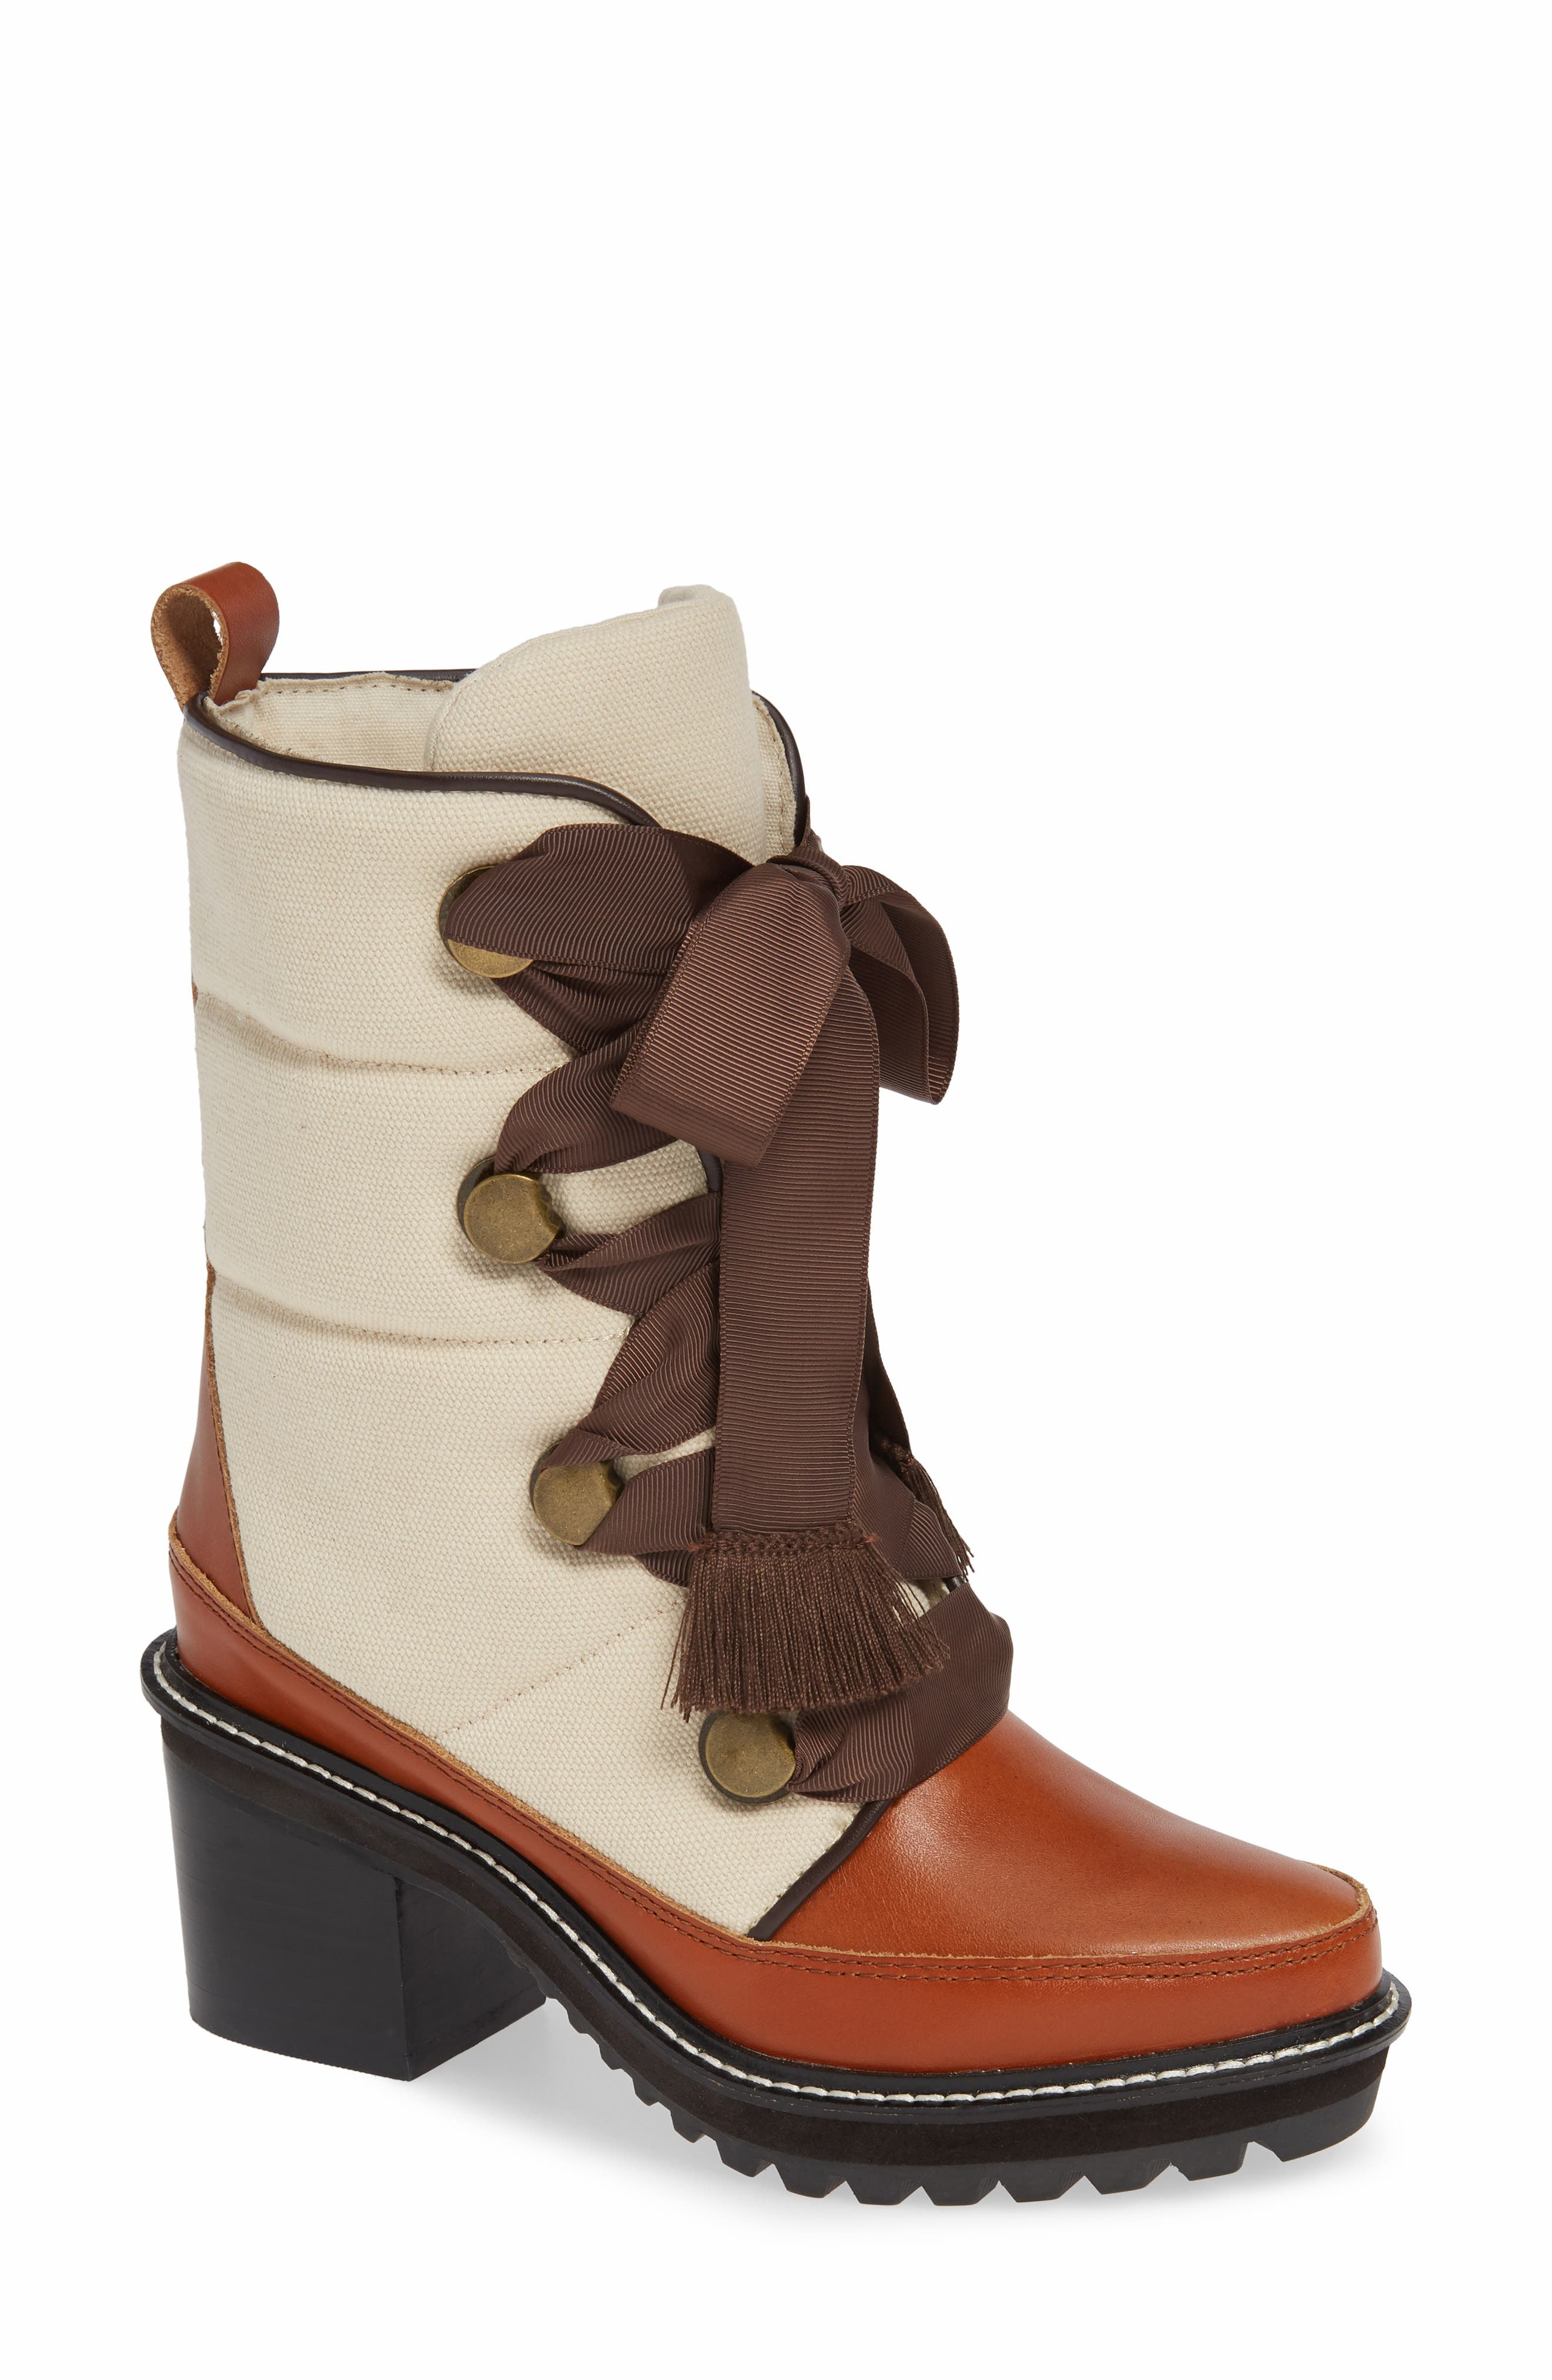 Puffin Lug Sole Boot, Main, color, NATURAL